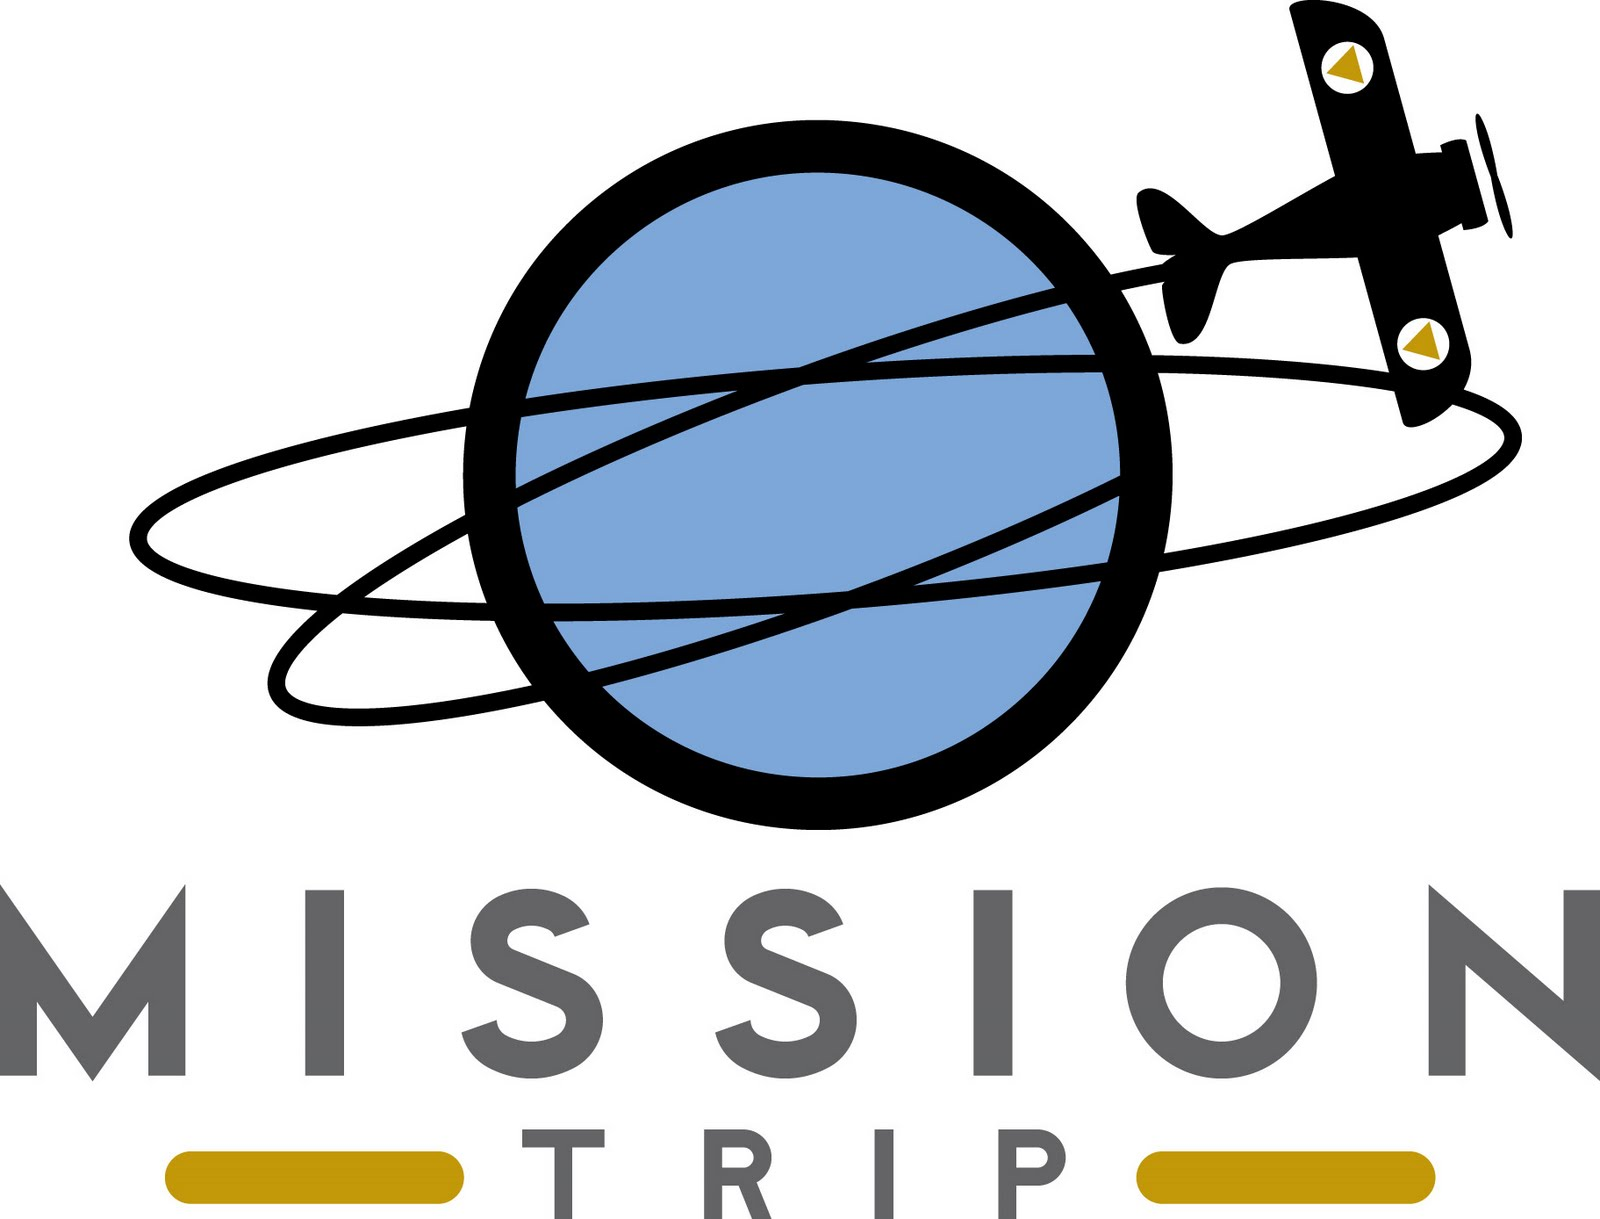 Free download best on. Missions clipart mission trip